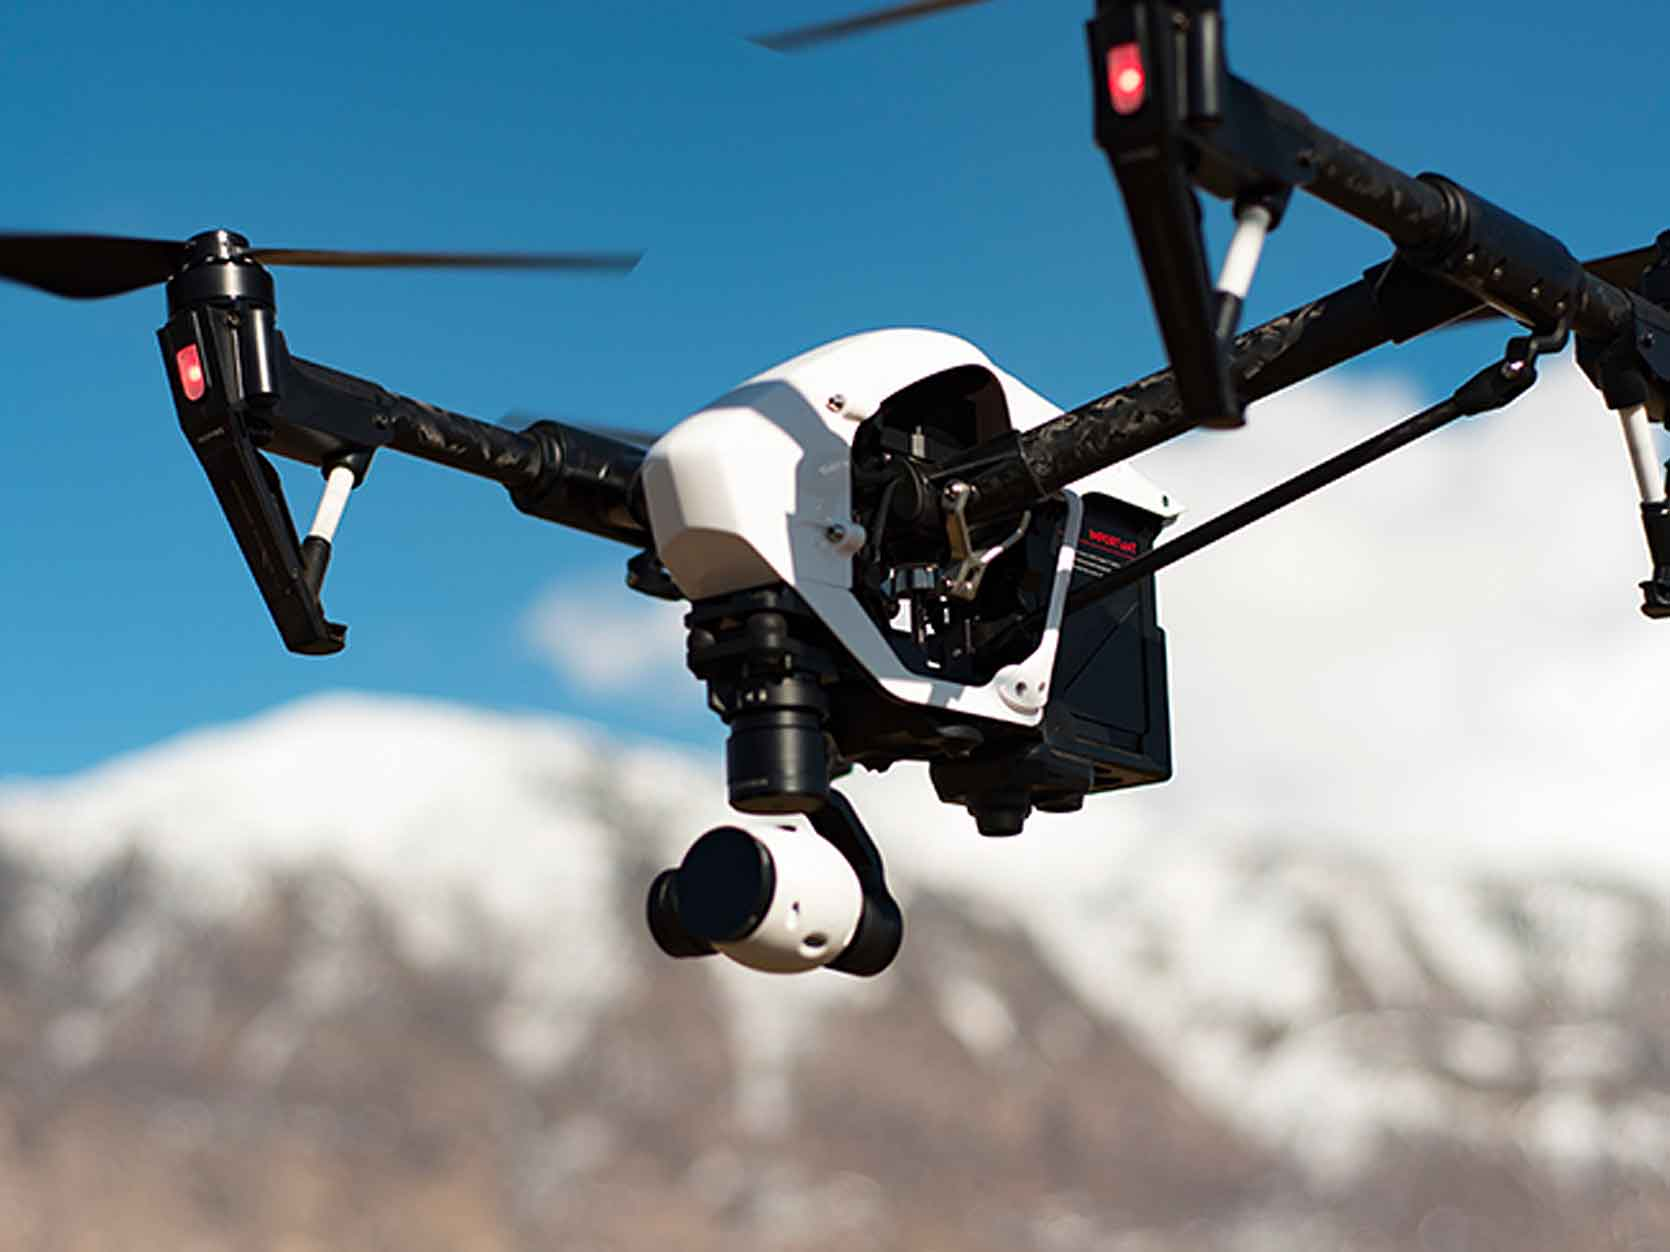 Socom Prepares For Game Of Drones Prototyping Contest Multi Video